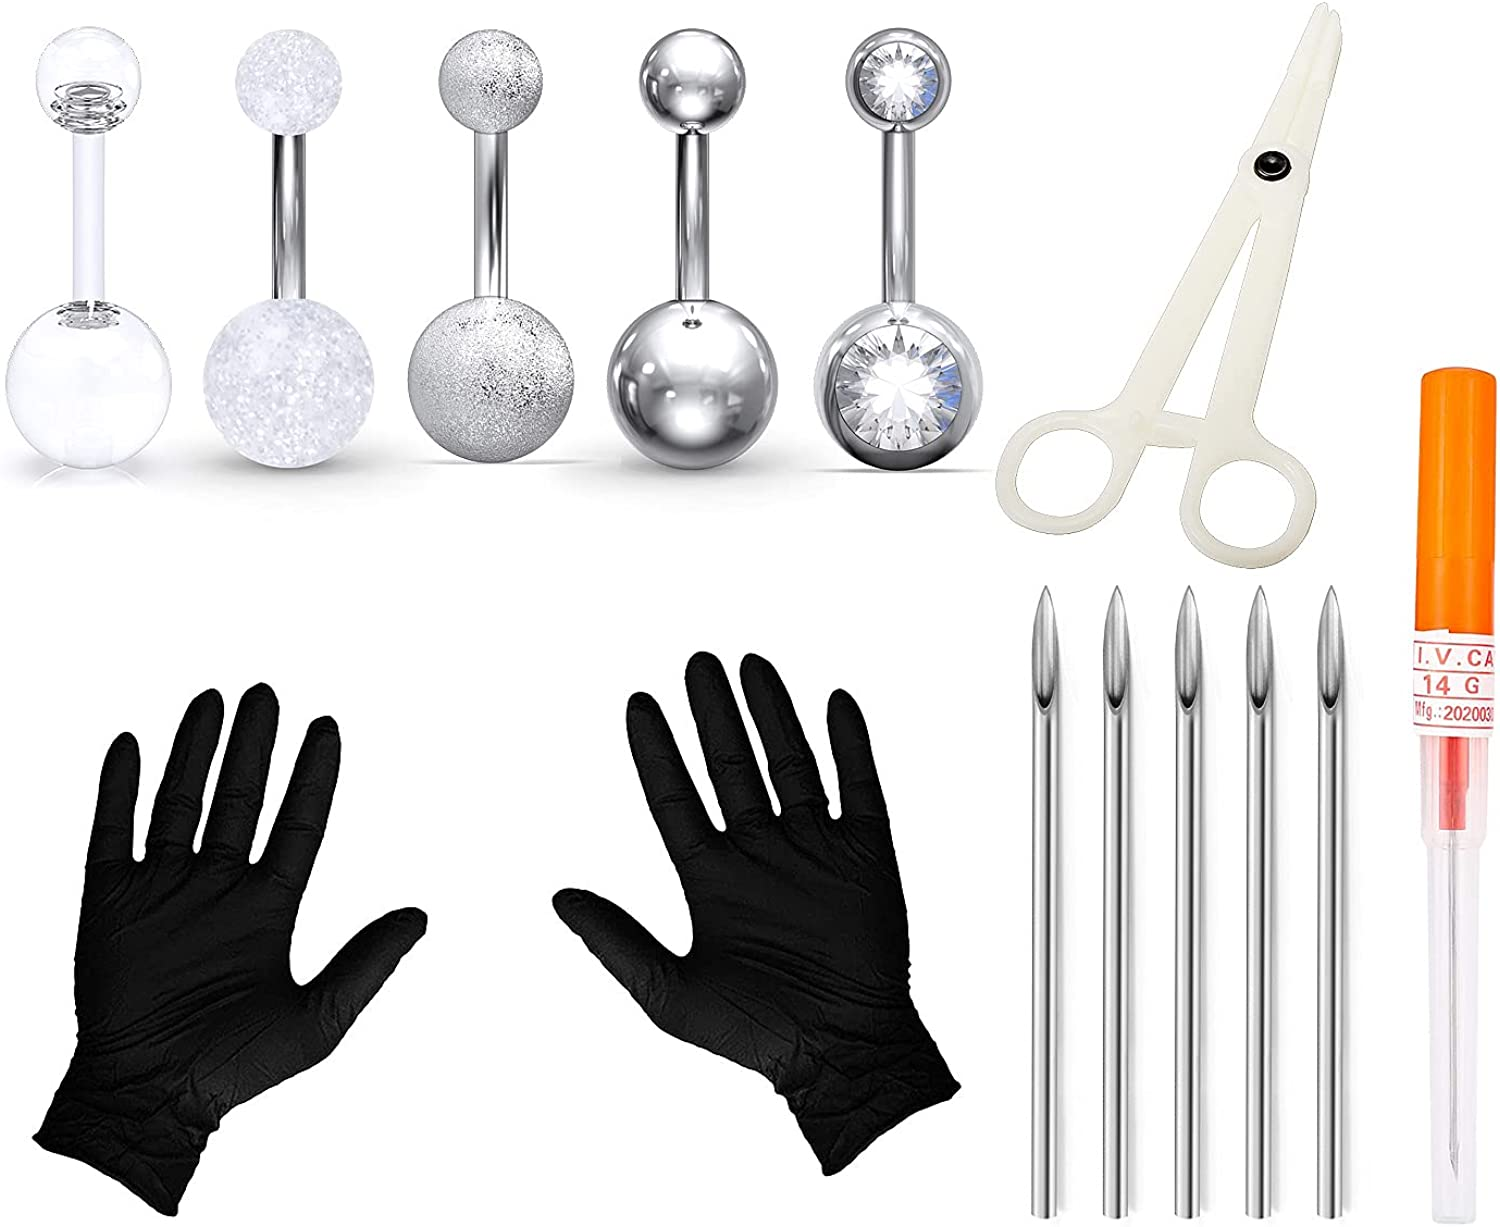 Tvalccoy belly button piercing Fashion Choice Piercing Needles kit Kit